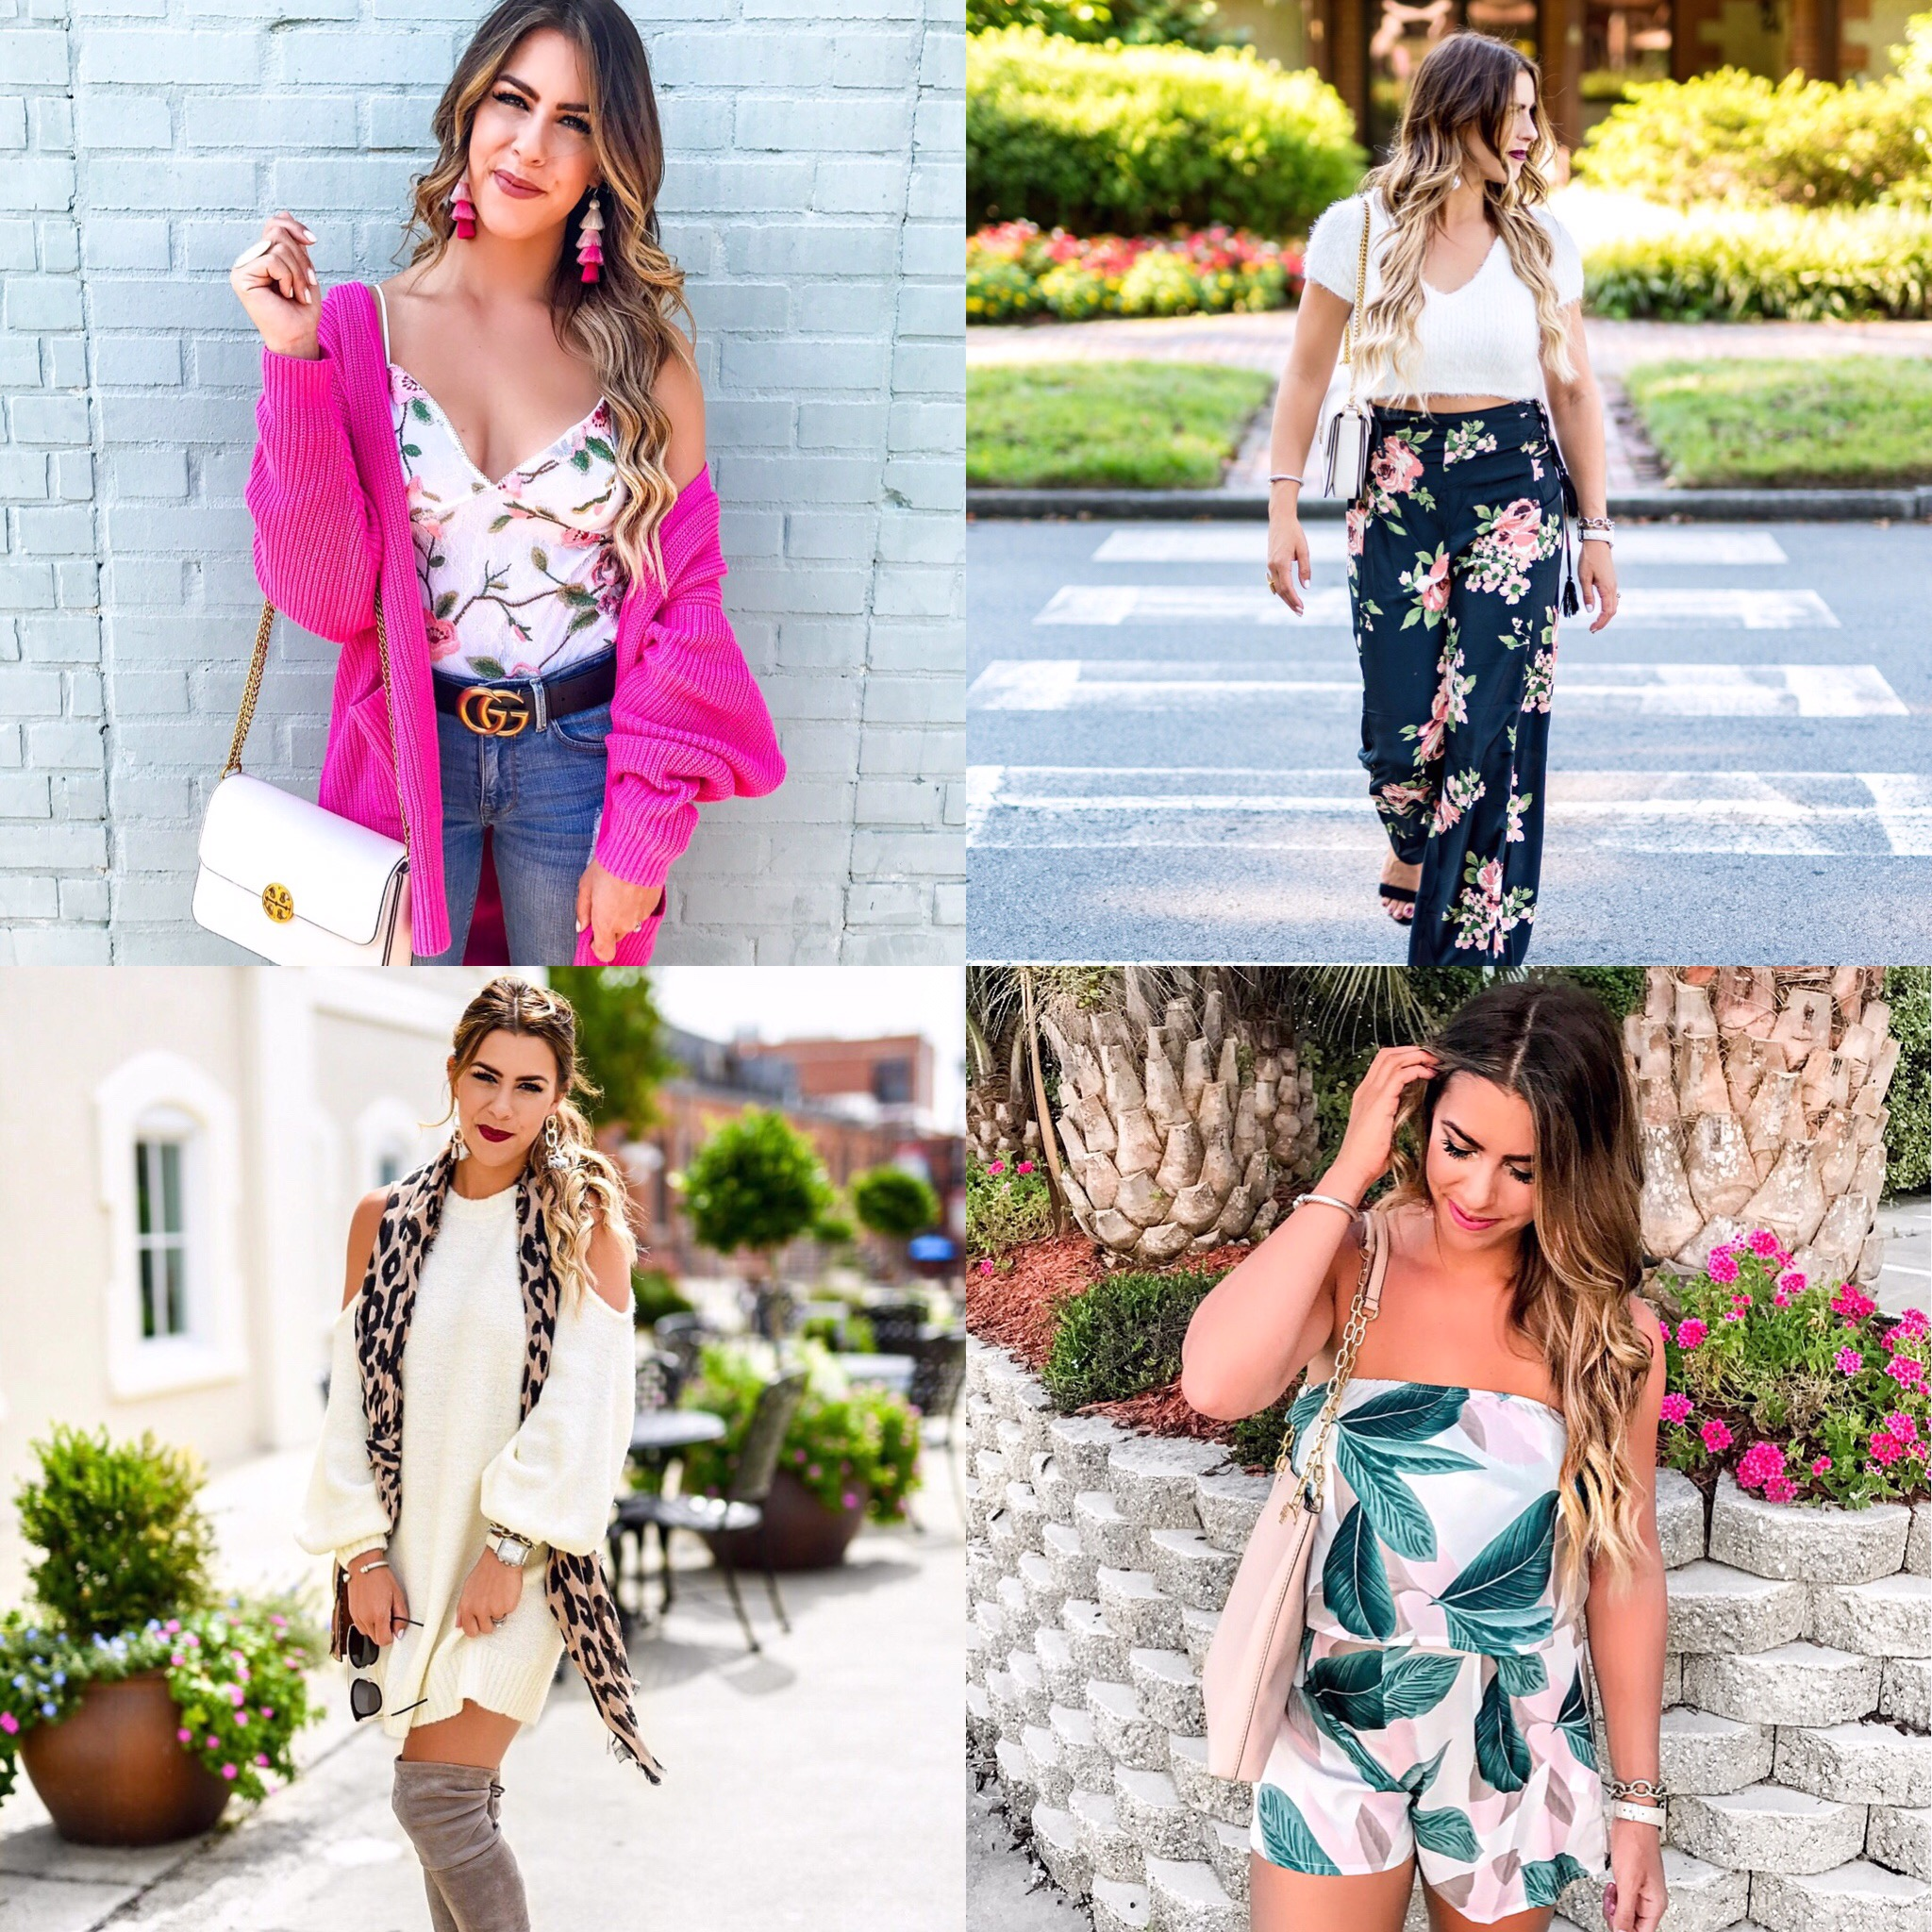 27 post instagram roundup by @baileyschwartz how to shop my instagram posts instagram post roundup what i'm wearing in my instagram posts @baileyschwartz instagram best of instagram posts liketoknow.it @liketoknow.it how to shop my instagram posts